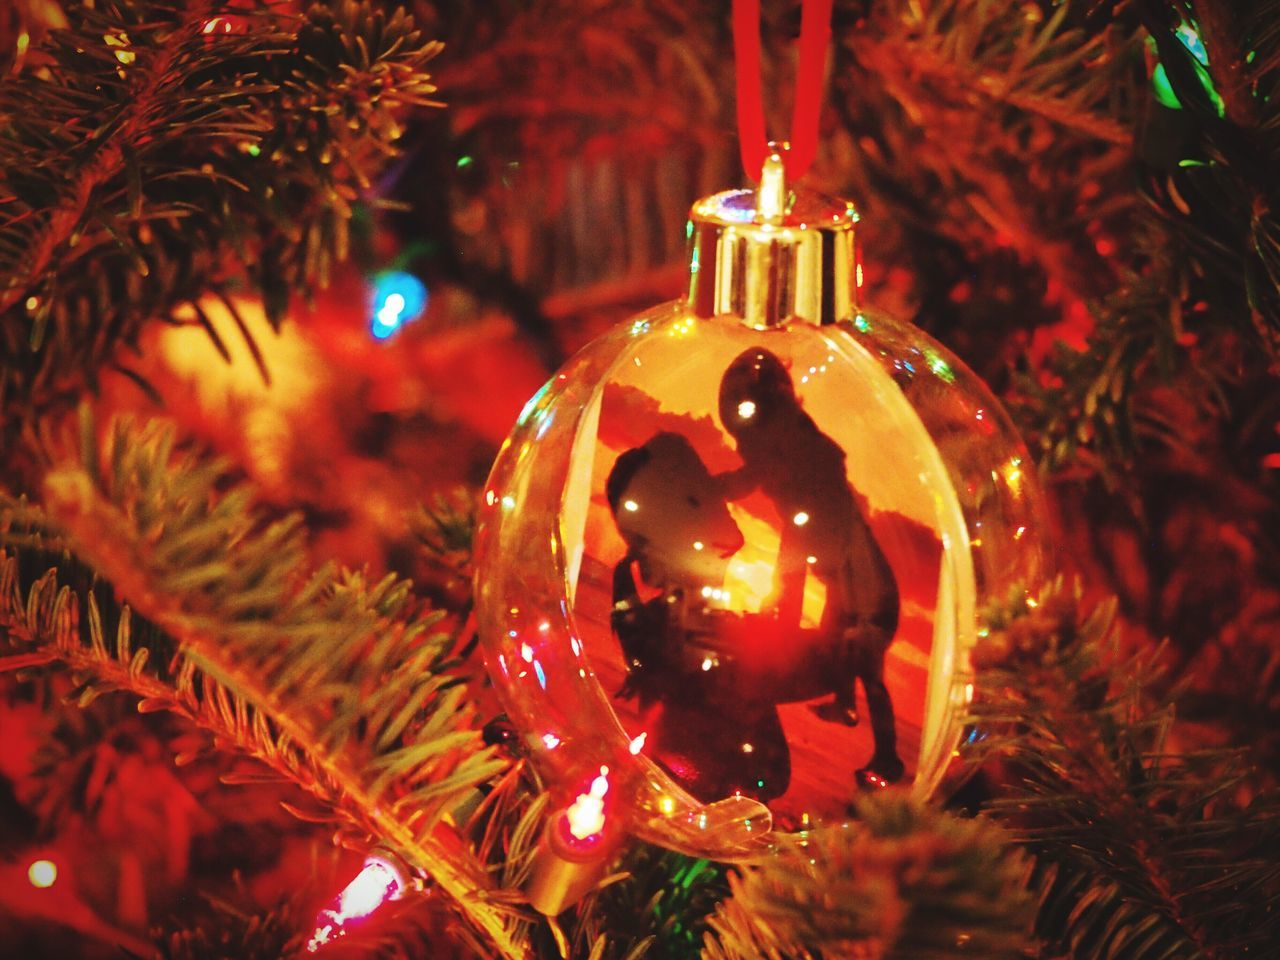 The Culture Of The Holidays Joy Of Life Joy JOY TO THE WORLD Mother And Child Light Up Your Life Light Of My Life Christmas Tree Christmas Lights Christmas Ornaments Ornaments Miracle Miracle Of Life Love Christmas Decoration Glowing Selective Focus Celebration Gratitude Wonder